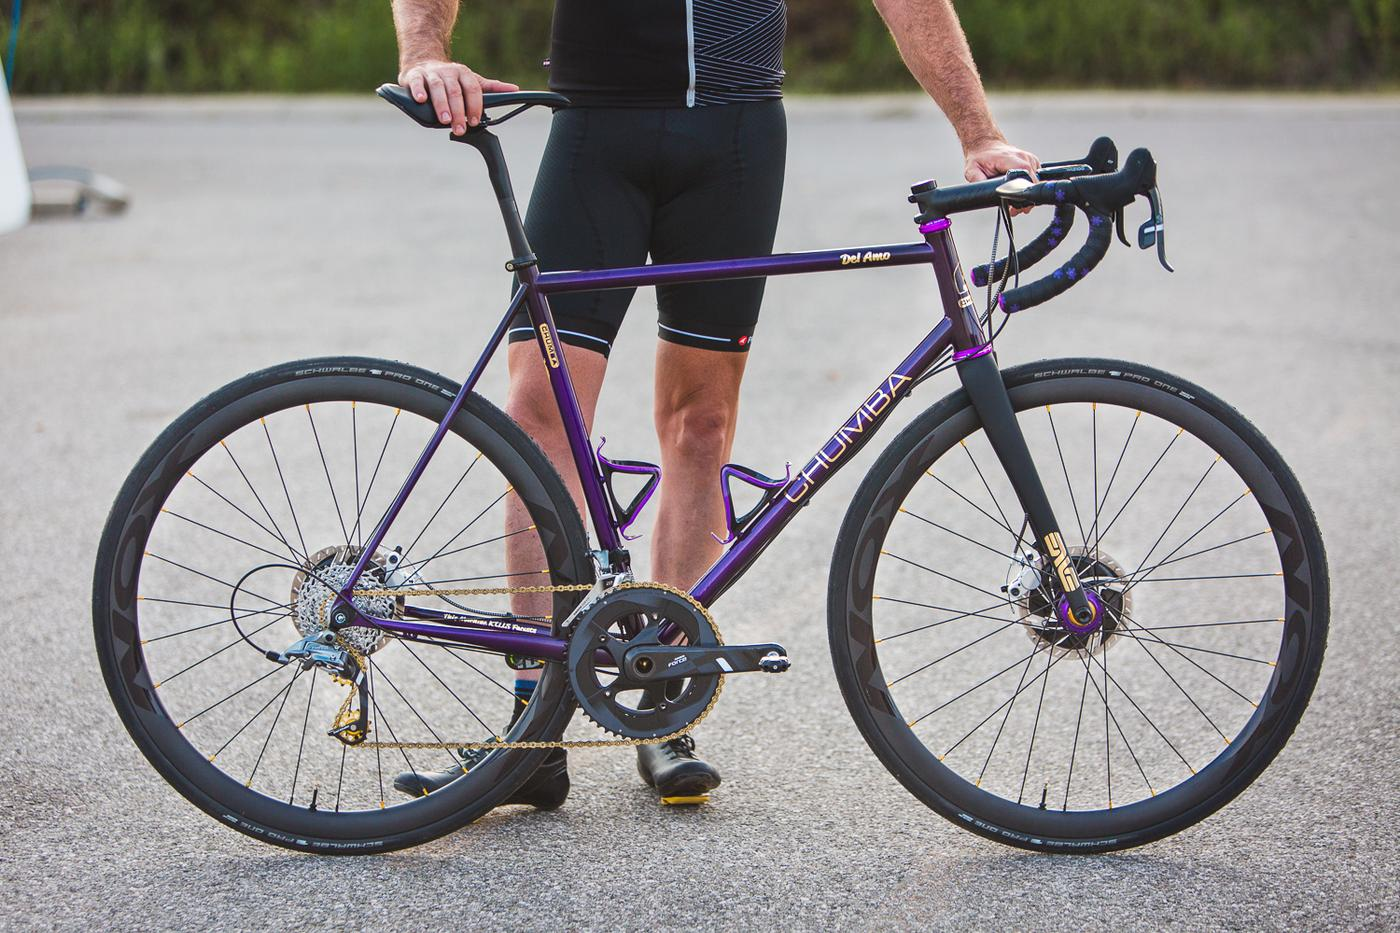 Chumba Launches Their Made in Texas Del Amo Steel Road Bike